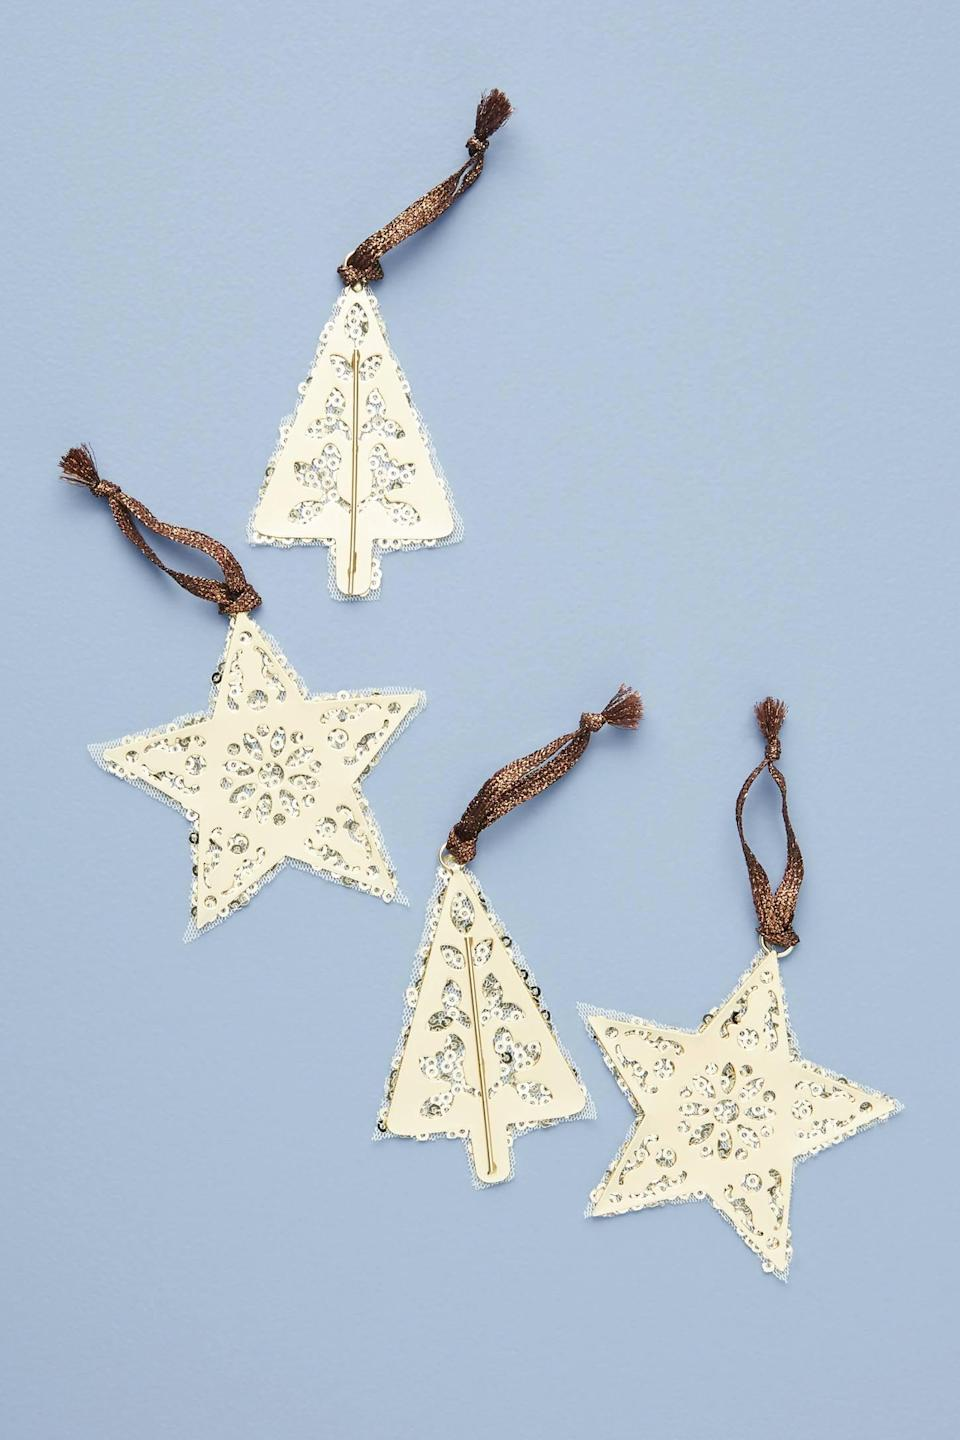 """<p>The metal detailing and sequins on the <a href=""""https://www.popsugar.com/buy/Holiday-Cheer-Ornaments-Set-Four-490592?p_name=Holiday%20Cheer%20Ornaments%2C%20Set%20of%20Four&retailer=anthropologie.com&pid=490592&price=24&evar1=casa%3Aus&evar9=46615300&evar98=https%3A%2F%2Fwww.popsugar.com%2Fhome%2Fphoto-gallery%2F46615300%2Fimage%2F46615463%2FHoliday-Cheer-Ornaments-Set-Four&list1=shopping%2Canthropologie%2Choliday%2Cchristmas%2Cchristmas%20decorations%2Choliday%20decor%2Chome%20shopping&prop13=mobile&pdata=1"""" rel=""""nofollow noopener"""" class=""""link rapid-noclick-resp"""" target=""""_blank"""" data-ylk=""""slk:Holiday Cheer Ornaments, Set of Four"""">Holiday Cheer Ornaments, Set of Four</a> ($24) are so pretty. </p>"""